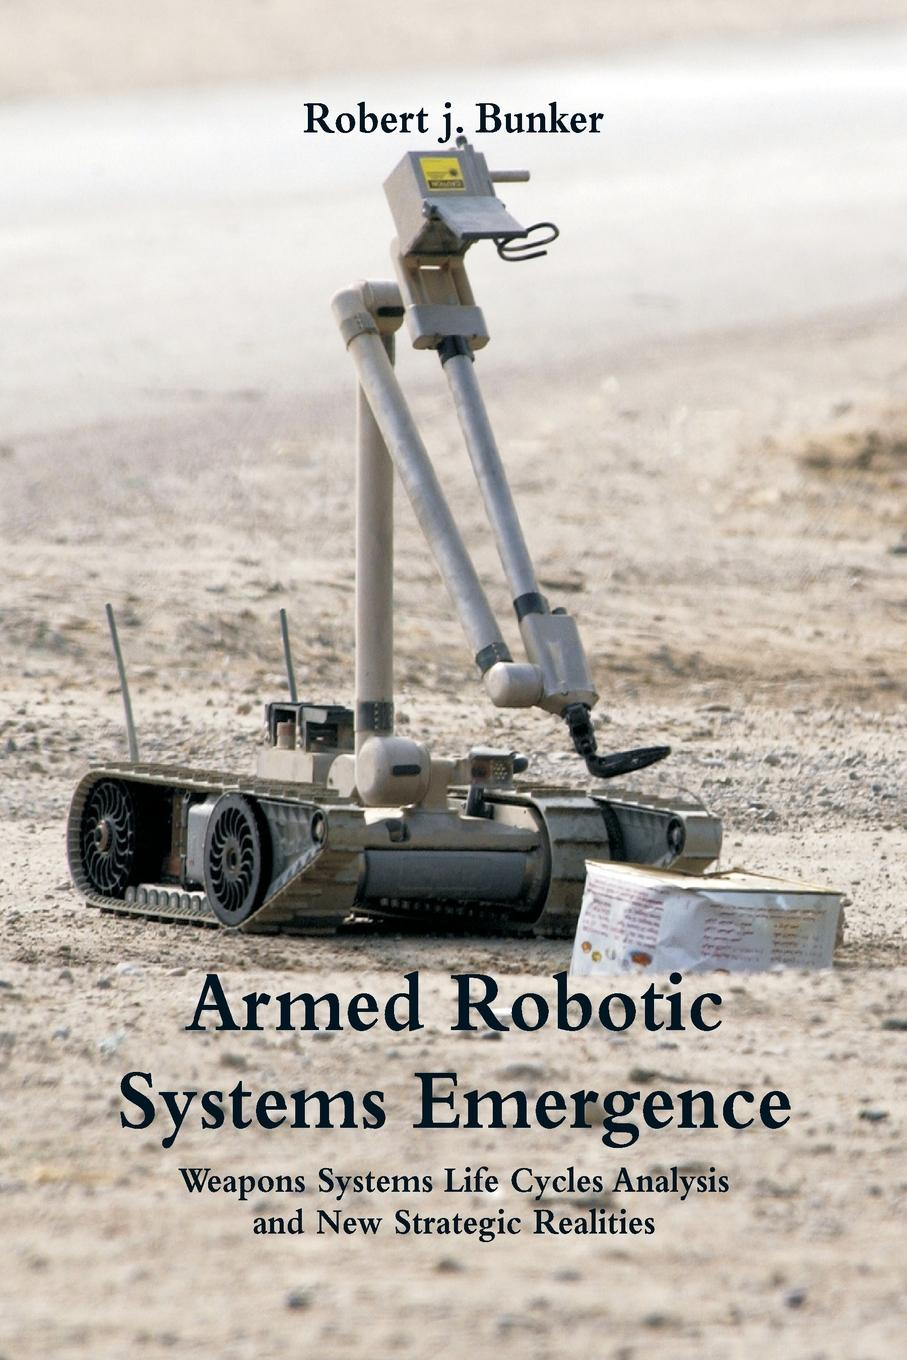 Robert j. Bunker Armed Robotic Systems Emergence. Weapons Systems Life Cycles Analysis and New Strategic Realities